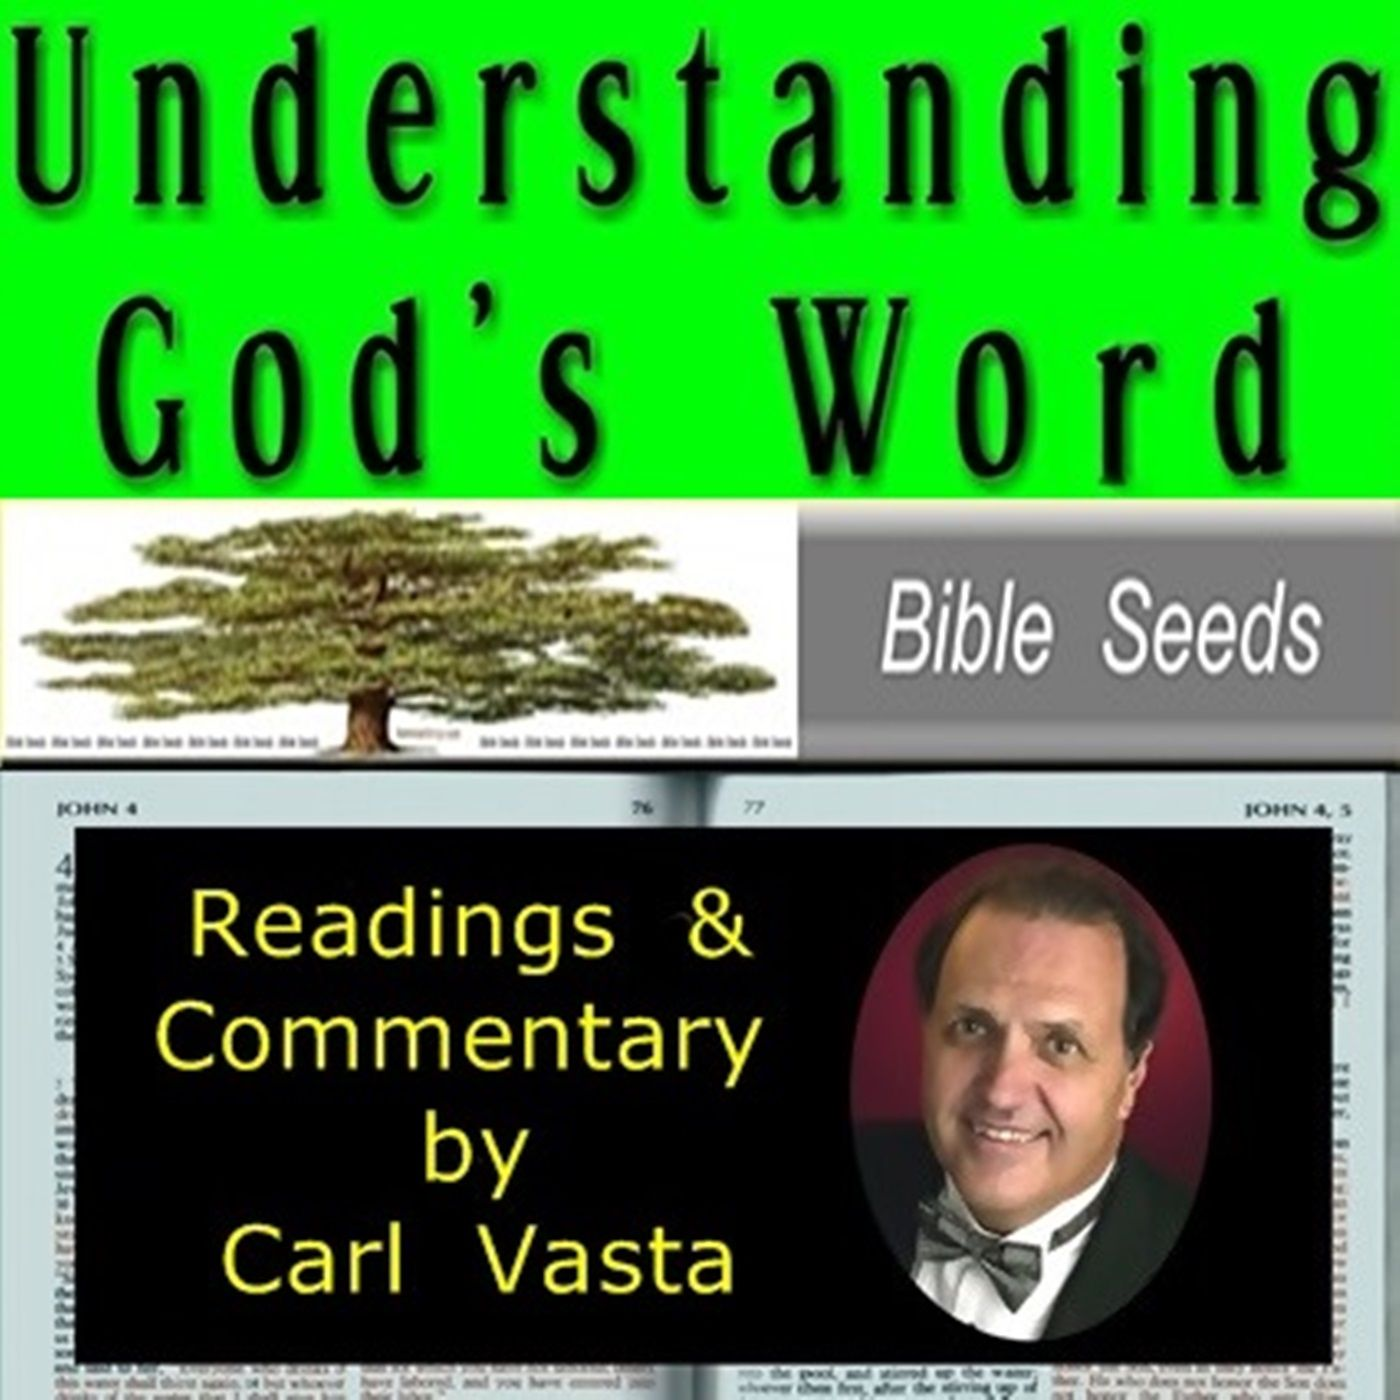 Bible Seeds:  The Mark Of The Beast